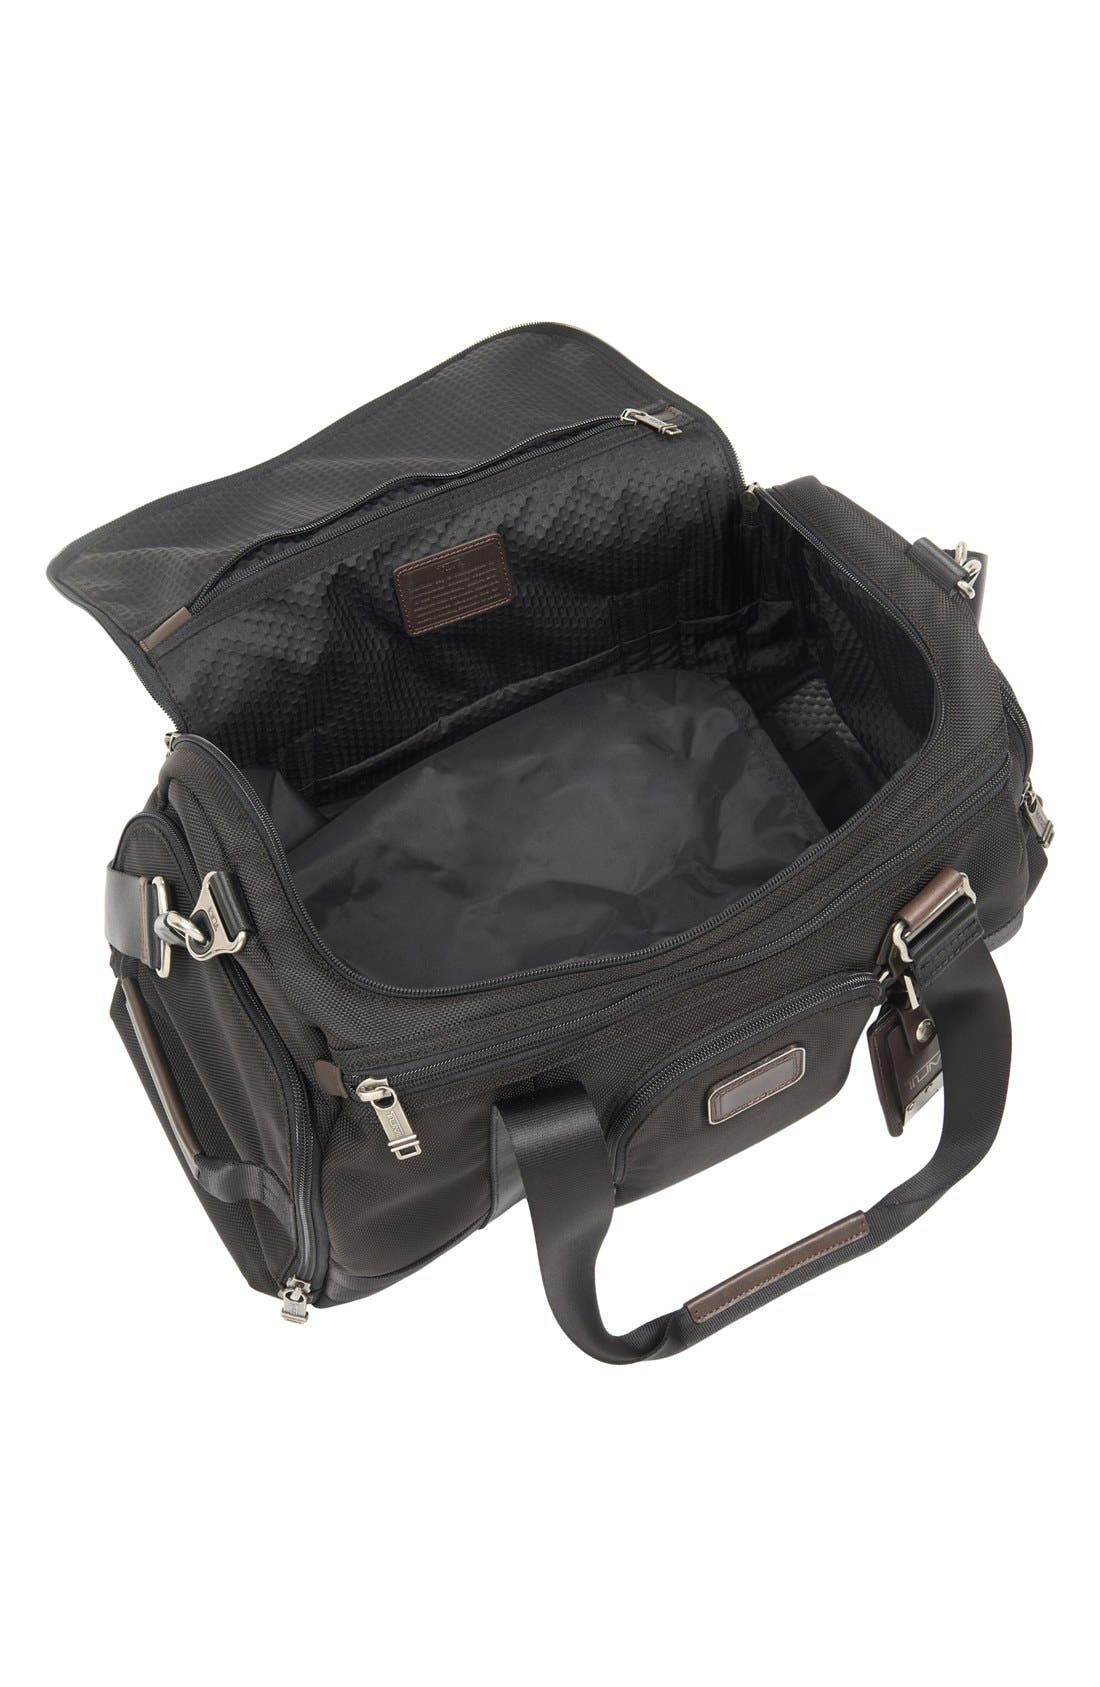 'Alpha Bravo - Maxwell' Duffel Bag,                             Alternate thumbnail 5, color,                             001